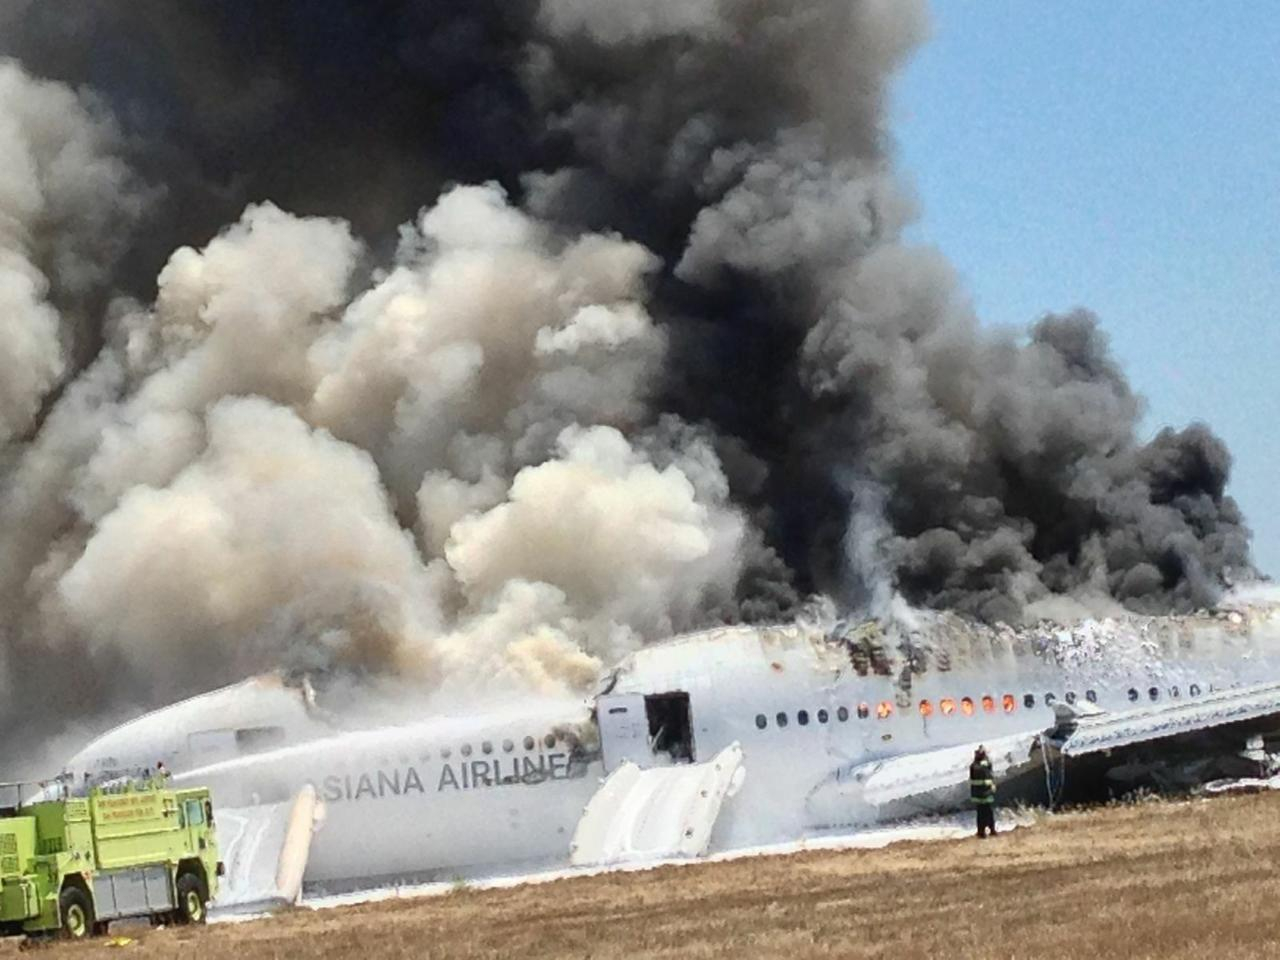 An Asiana Airlines Boeing 777 plane is engulfed in smoke on the tarmac after a crash landing at San Francisco International Airport in California July 6, 2013, in this handout file photo provided by passenger Eugene Anthony Rah, released to Reuters on July 8, 2013. U.S. safety investigators are looking closely at whether an over-reliance on autopilot systems in modern aircraft has degraded human flying skills, increasing the risk of accidents. At a two-day hearing that starts on December 10, 2013, the NTSB will examine if cockpit complacency caused the Asiana Airlines Inc's jetliner with 307 people aboard to crash land at San Francisco International Airport in July, killing three and injuring more than 180.REUTERS/Eugene Anthony Rah/Handout via Reuters/Files (UNITED STATES - Tags: TRANSPORT DISASTER) ATTENTION EDITORS - FOR EDITORIAL USE ONLY. NOT FOR SALE FOR MARKETING OR ADVERTISING CAMPAIGNS. THIS IMAGE HAS BEEN SUPPLIED BY A THIRD PARTY. IT IS DISTRIBUTED, EXACTLY AS RECEIVED BY REUTERS, AS A SERVICE TO CLIENTS. MANDATORY CREDIT